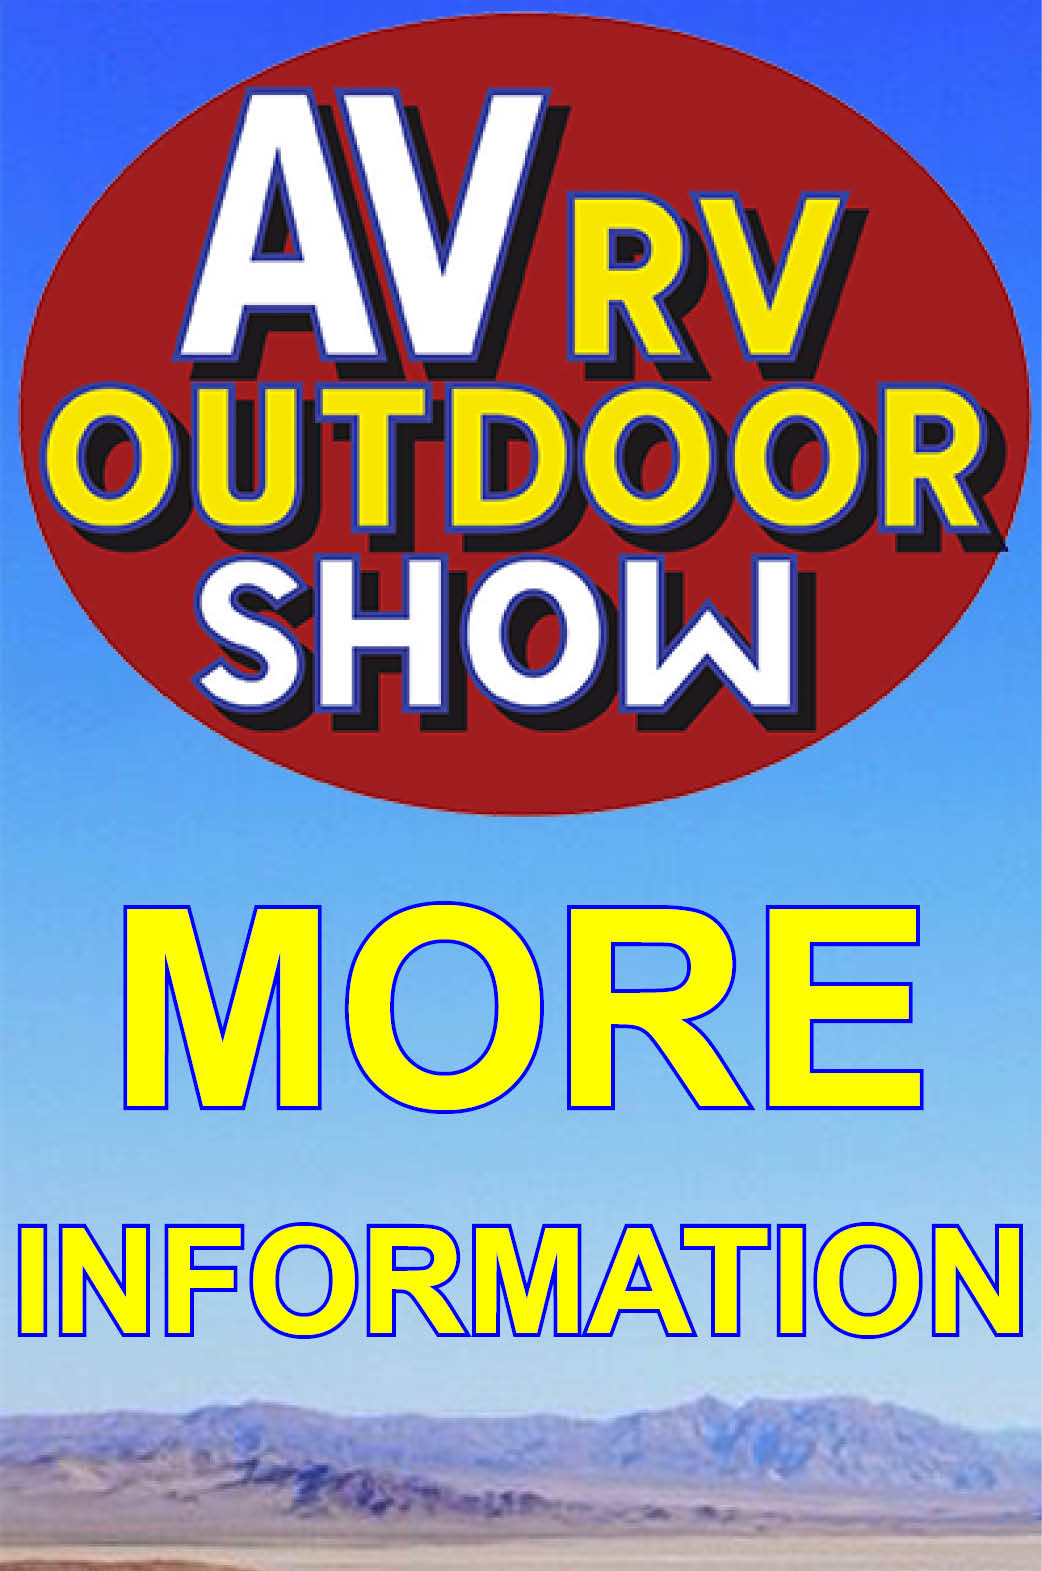 AV RV Outdoor Show